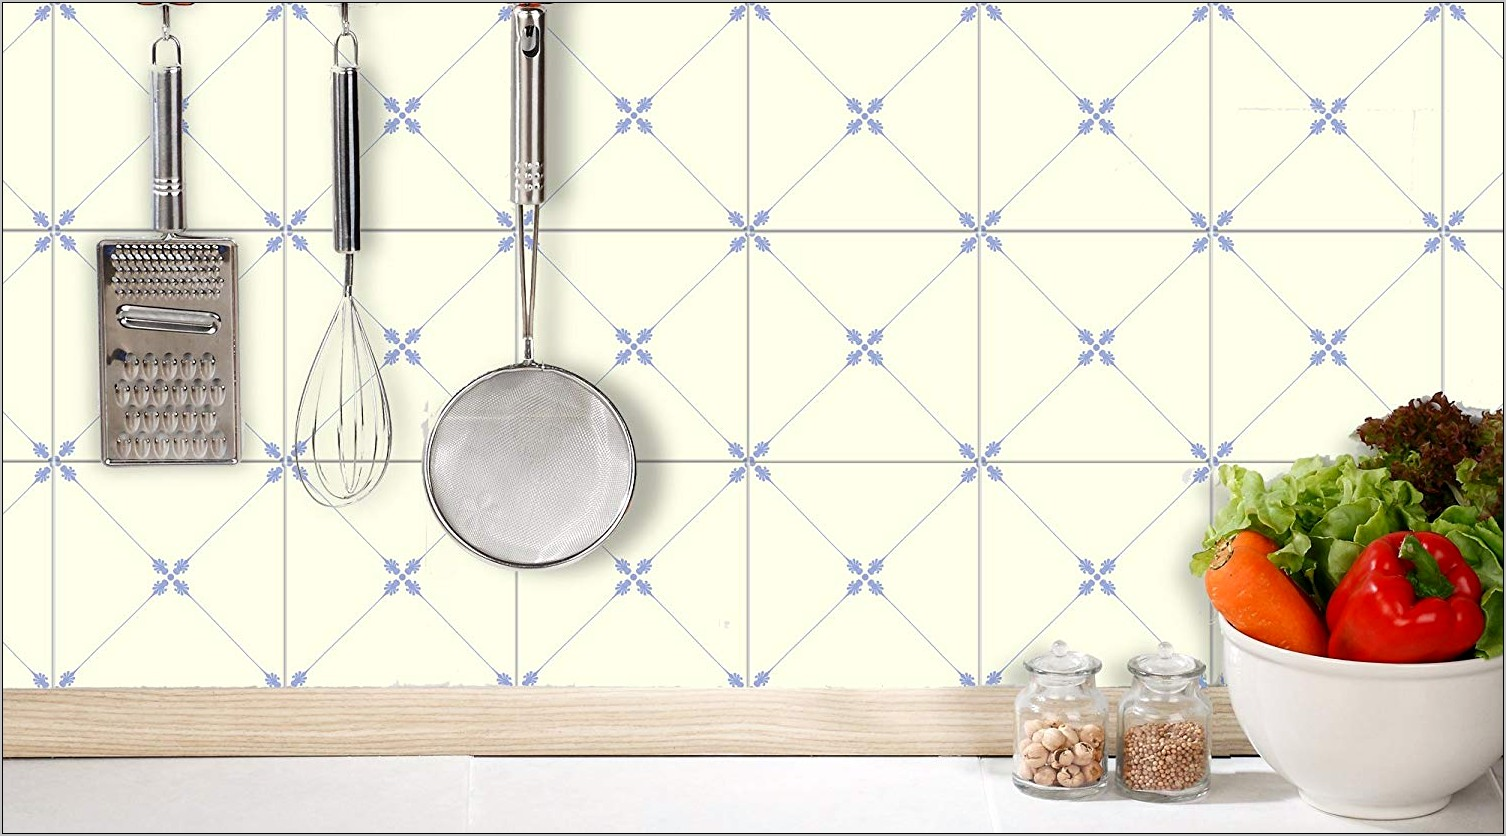 Decorative Stickers For Kitchen Tiles